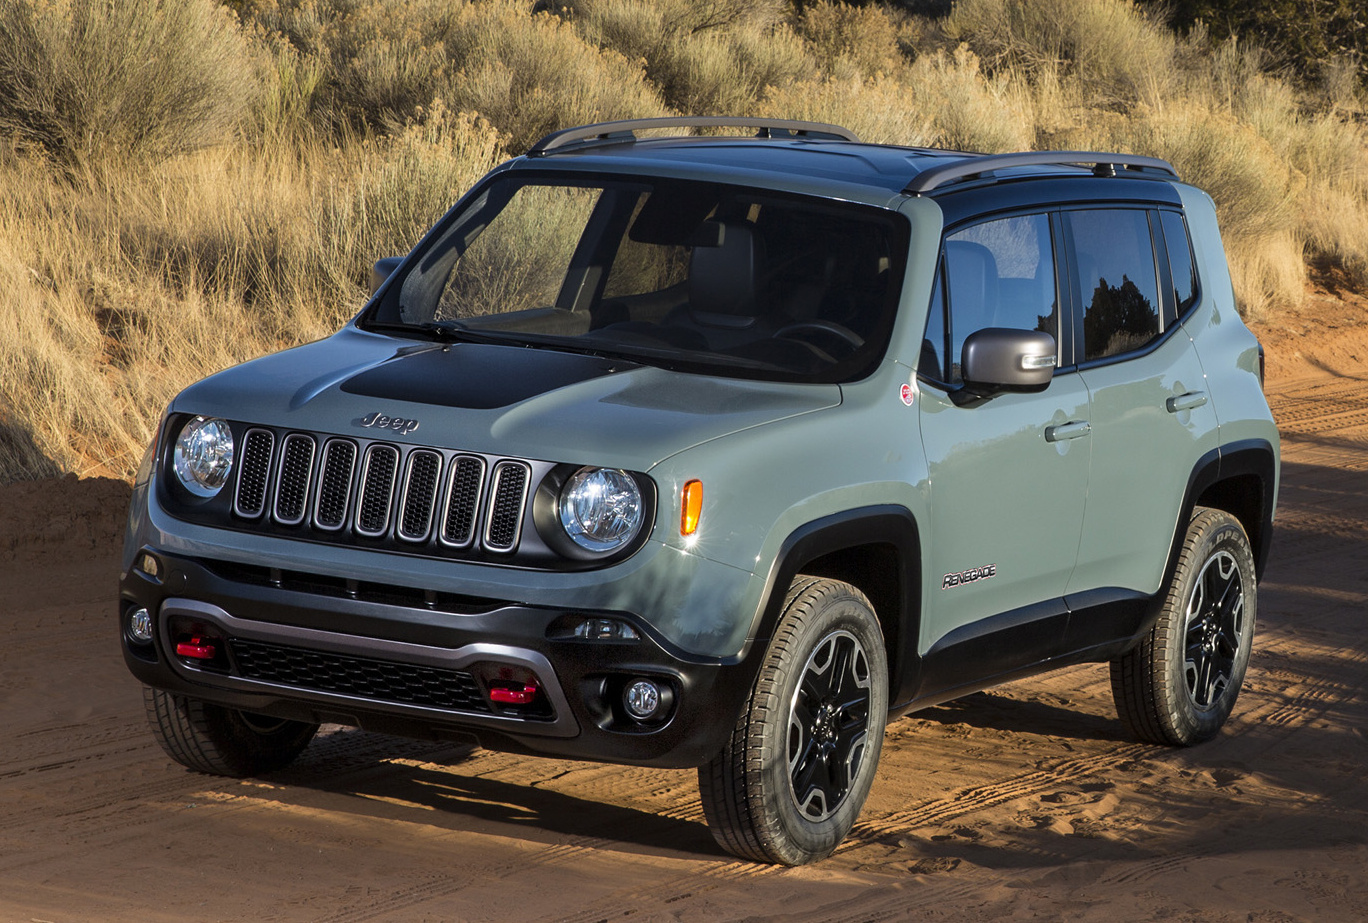 New 2015 Jeep Renegade For Sale - CarGurus